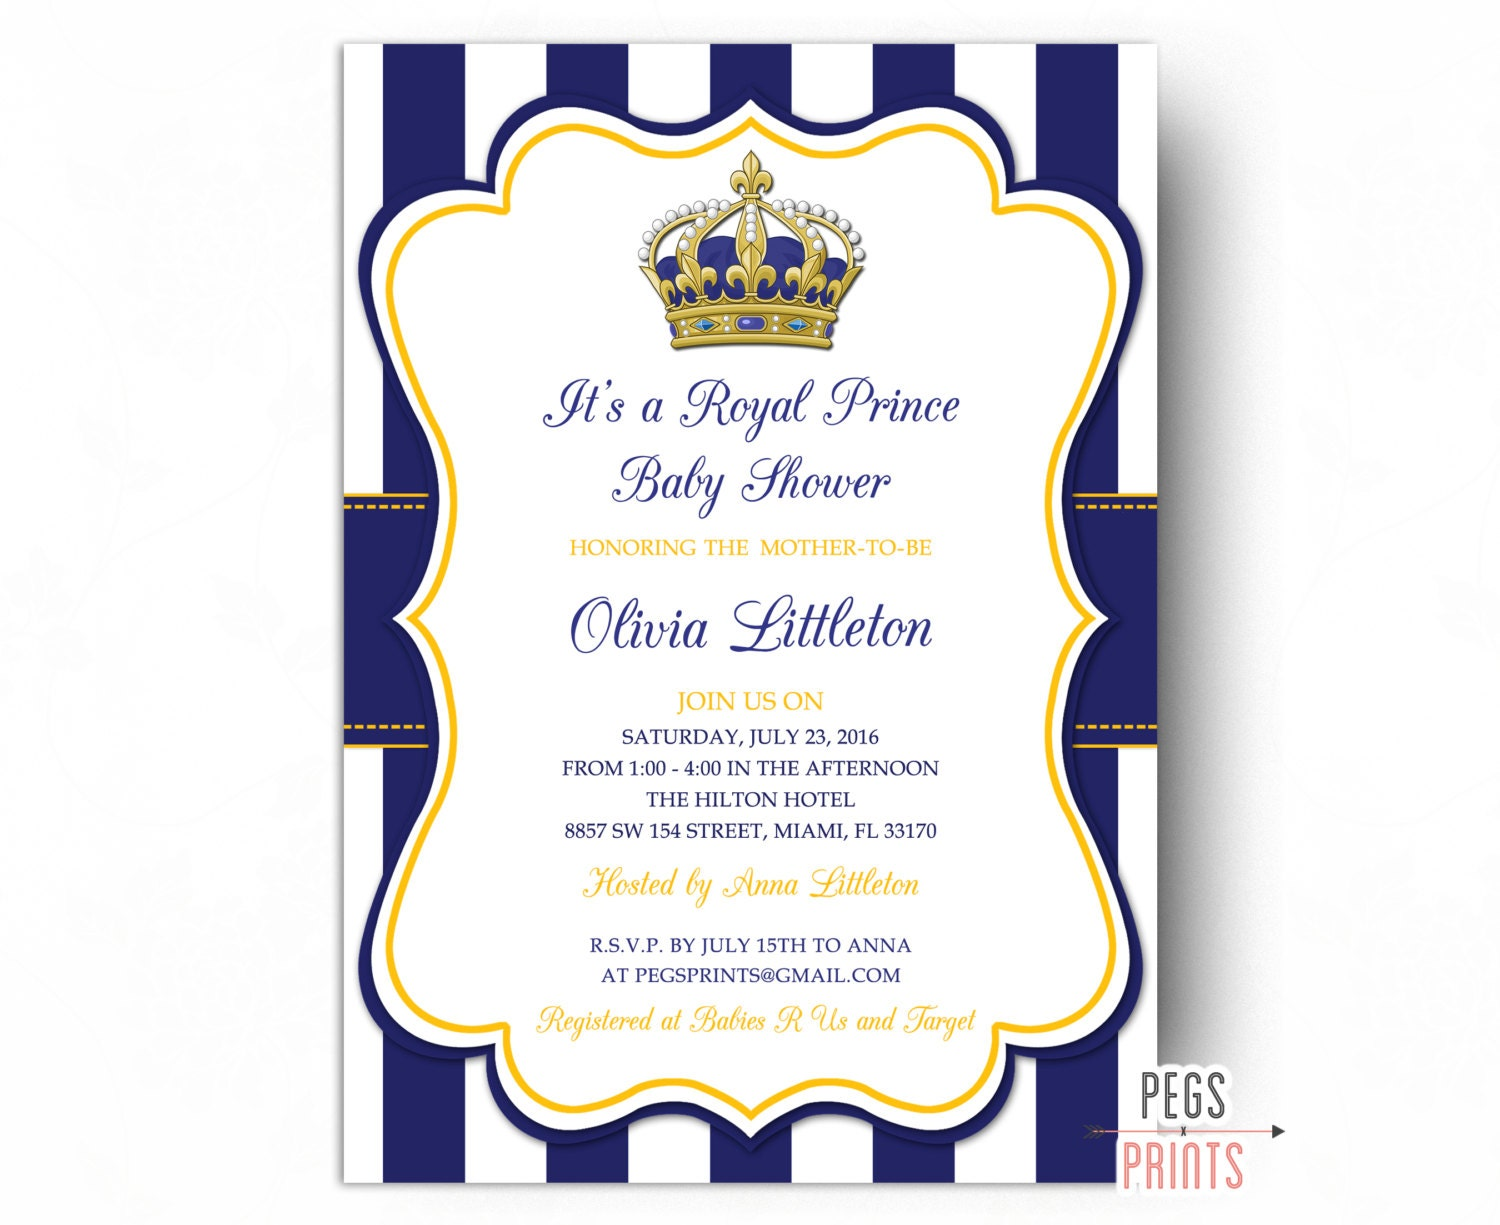 Royal Prince Baby Shower Invitations Little Prince Baby